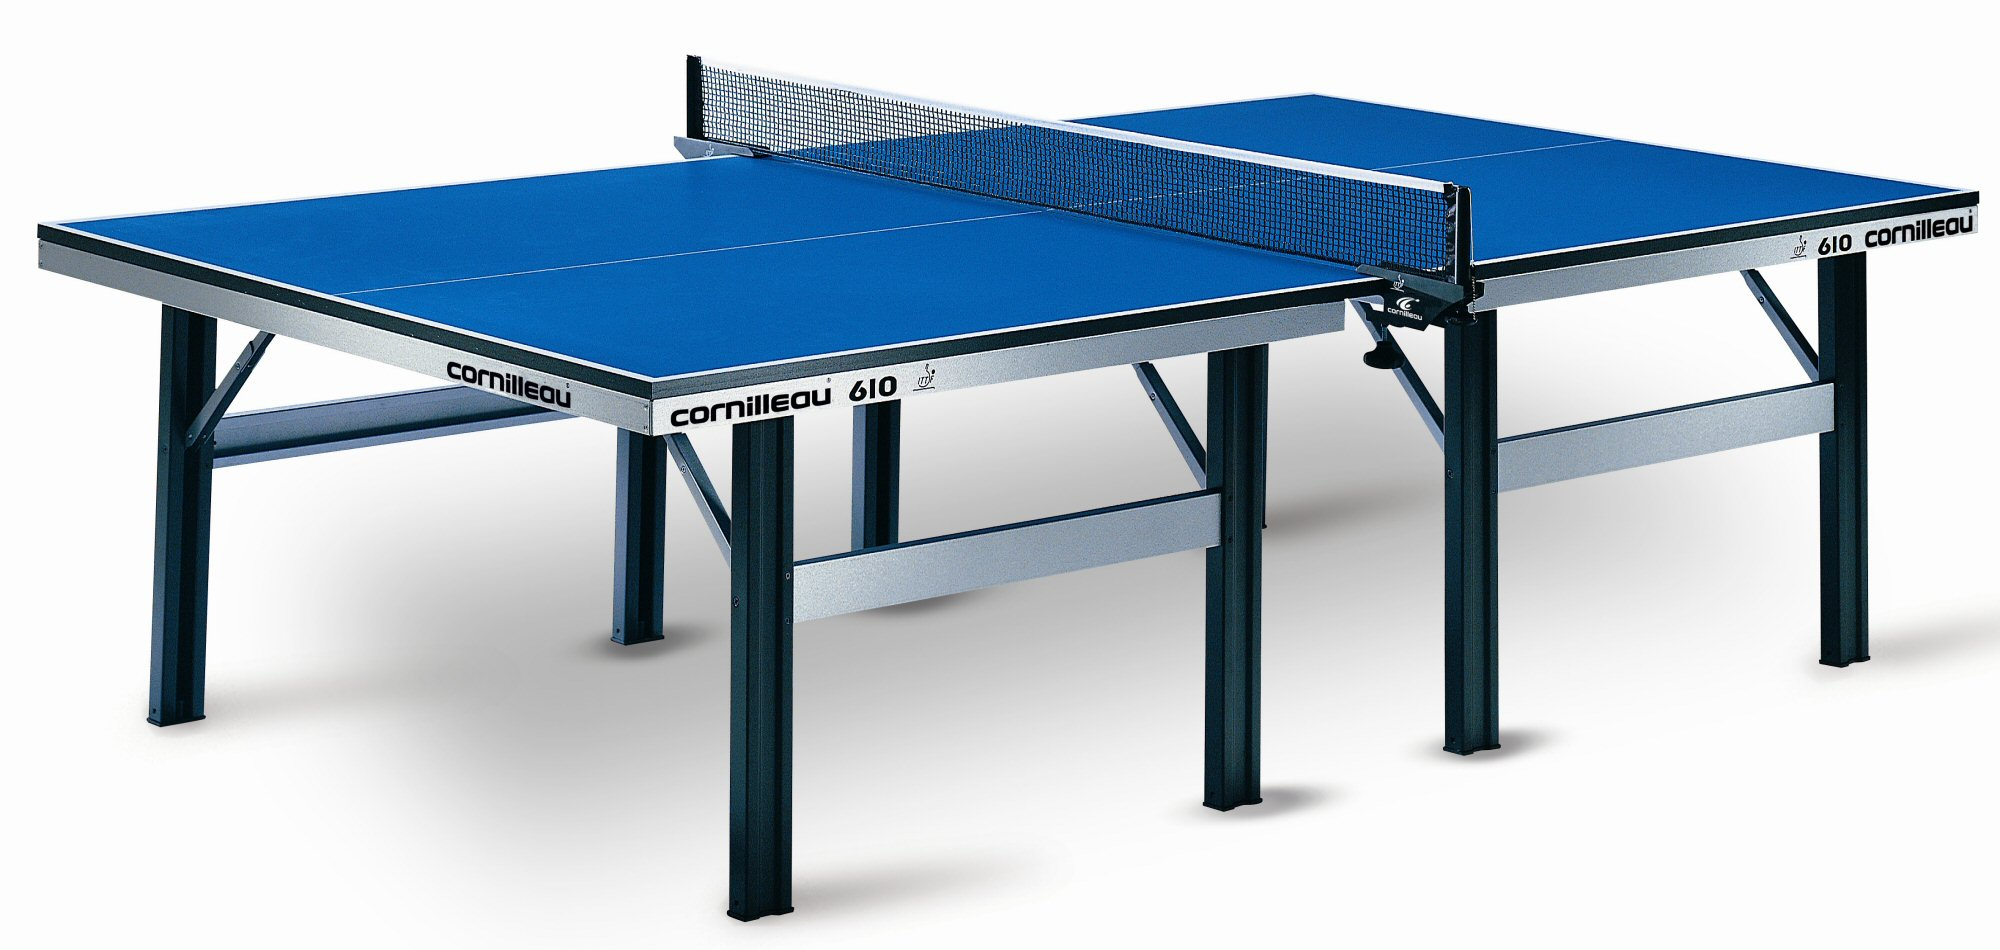 competition table tennis tables cornilleau. Black Bedroom Furniture Sets. Home Design Ideas